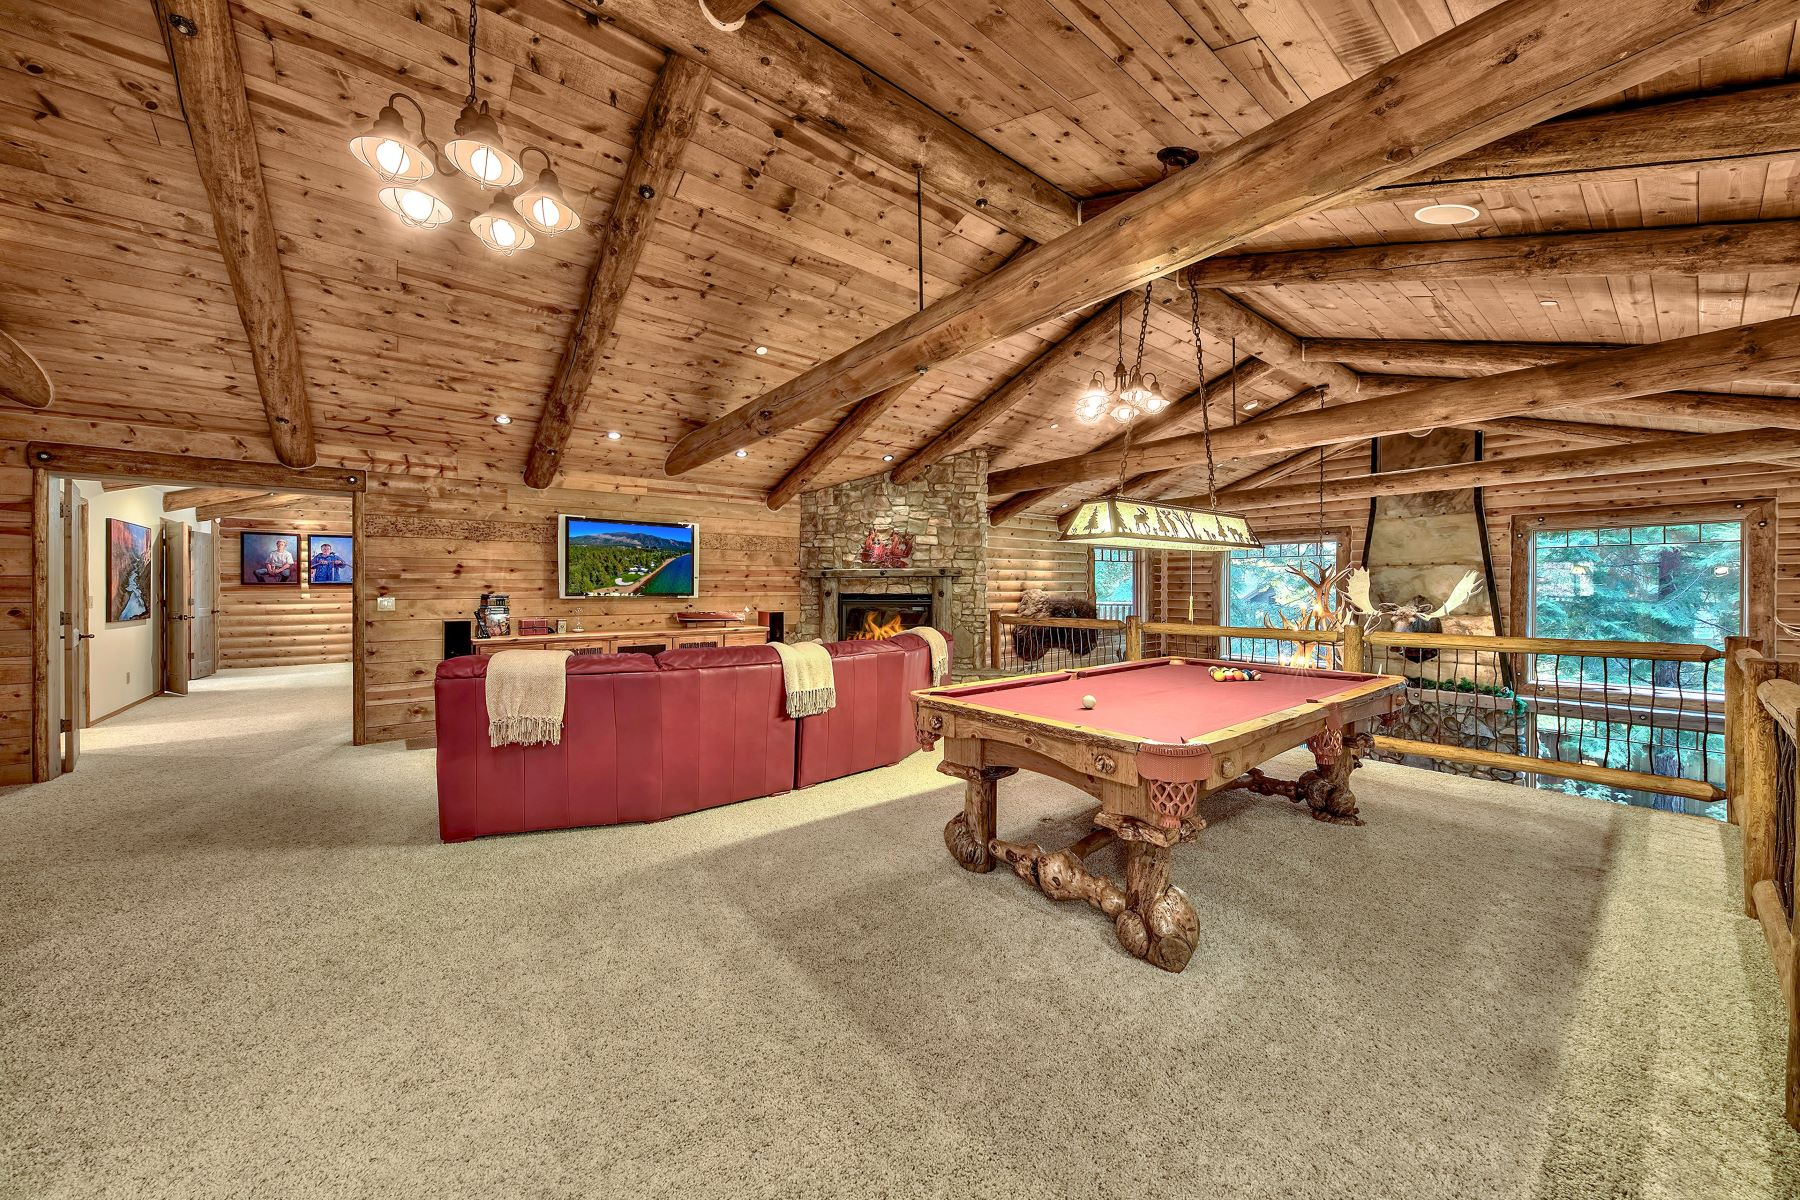 Additional photo for property listing at Magnificent Tahoe Mountain Lodge 1088 Lakeshore Blvd Incline Village, Nevada 89451 United States